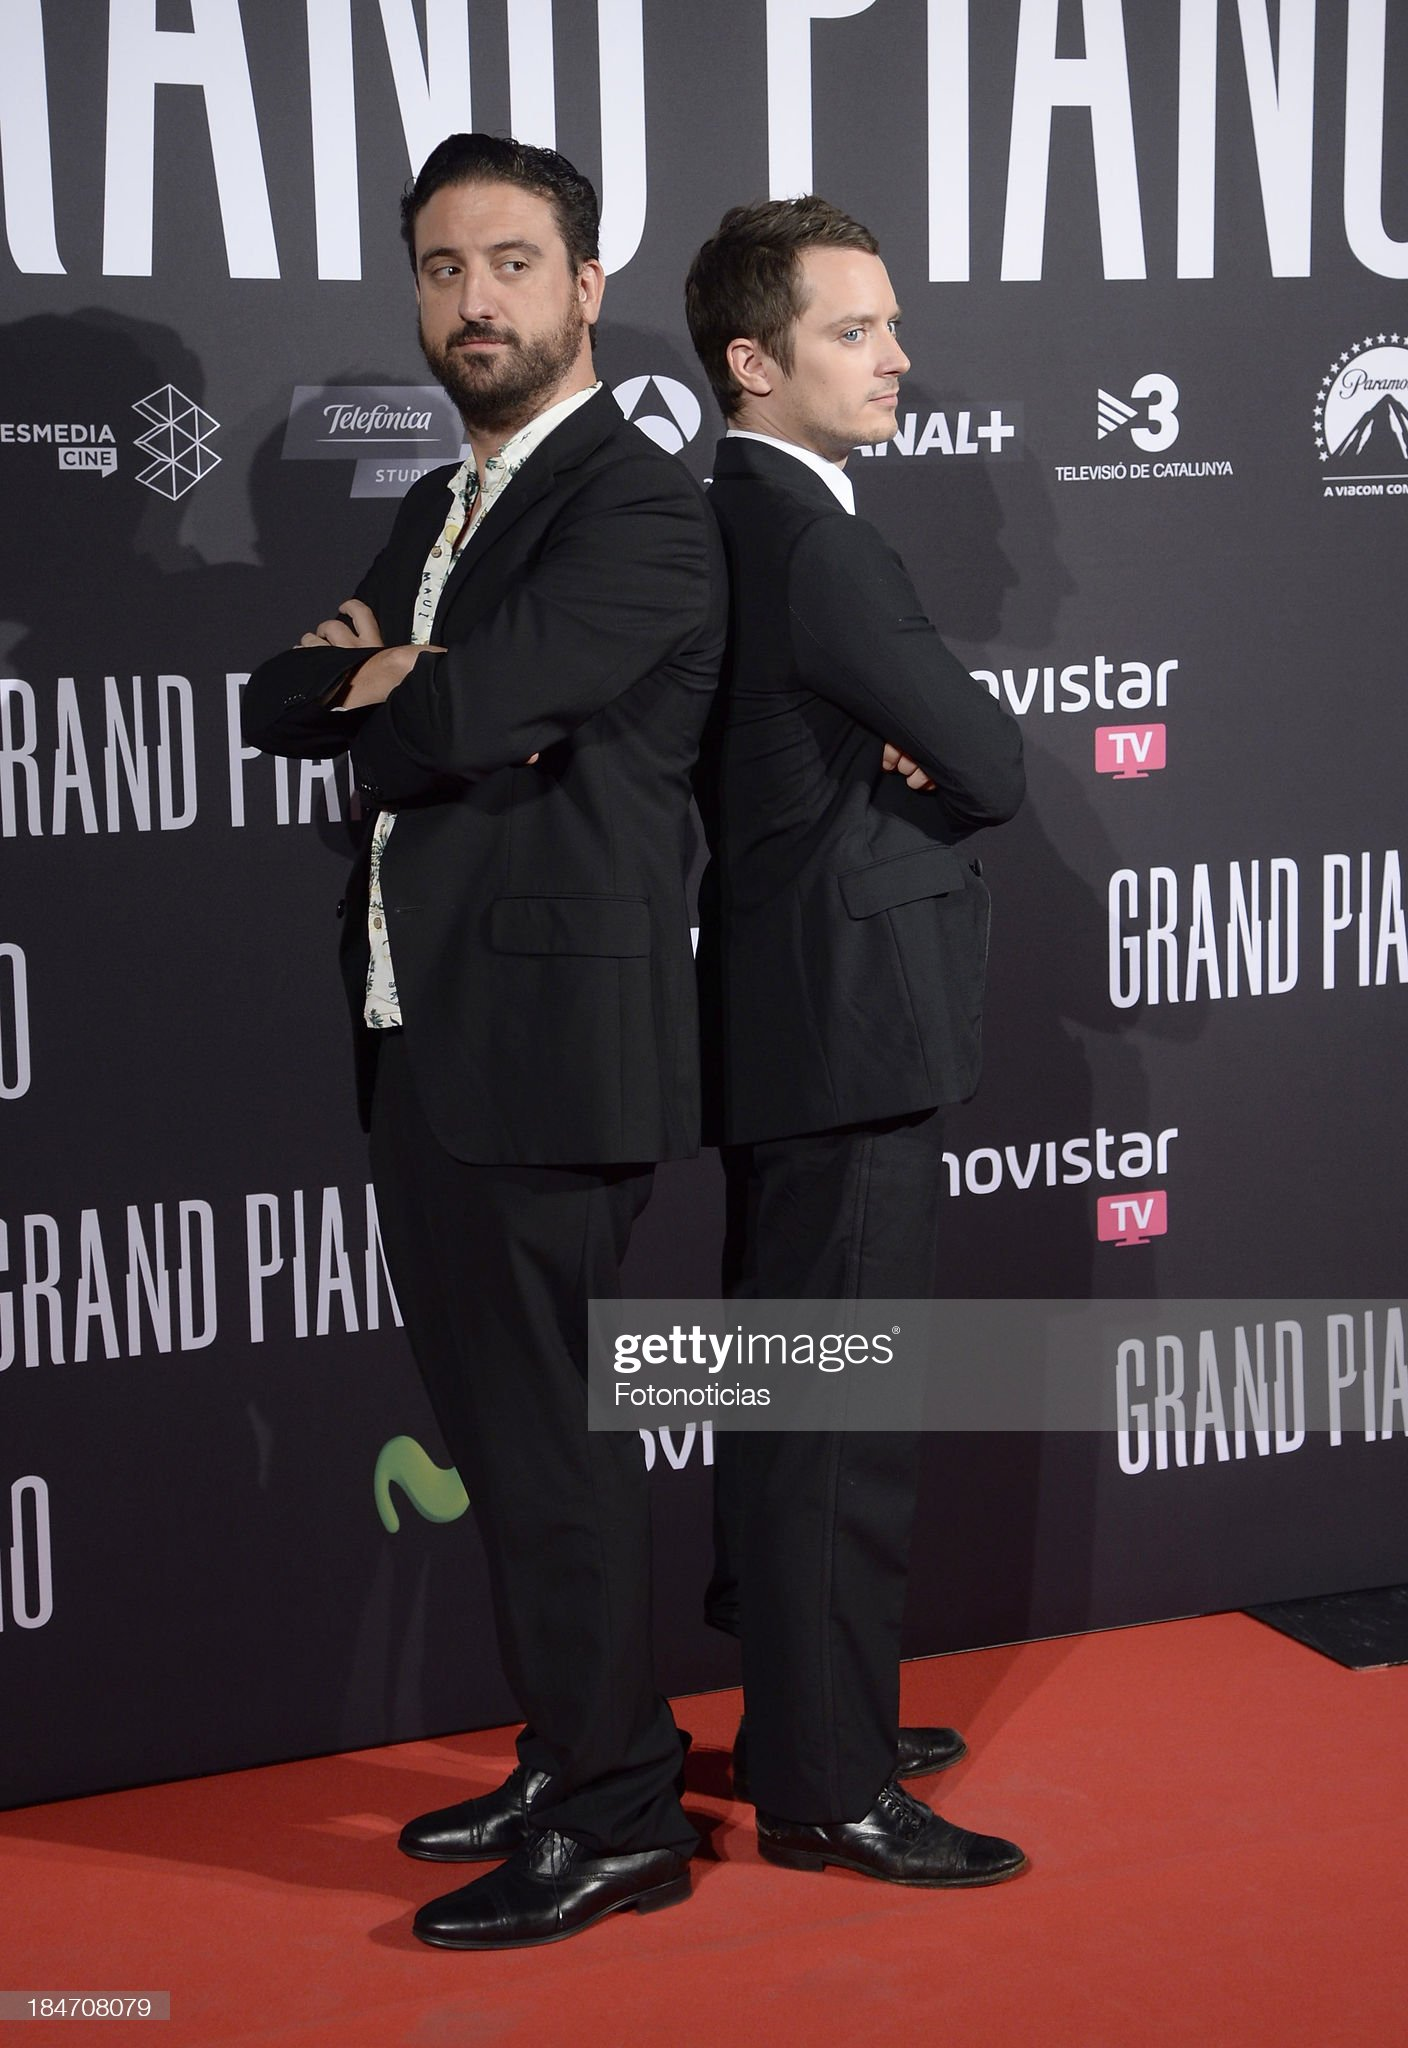 ¿Cuánto mide Eugenio Mira? - Altura Director-eugenio-mira-and-actor-elijah-wood-attend-the-premiere-of-picture-id184708079?s=2048x2048